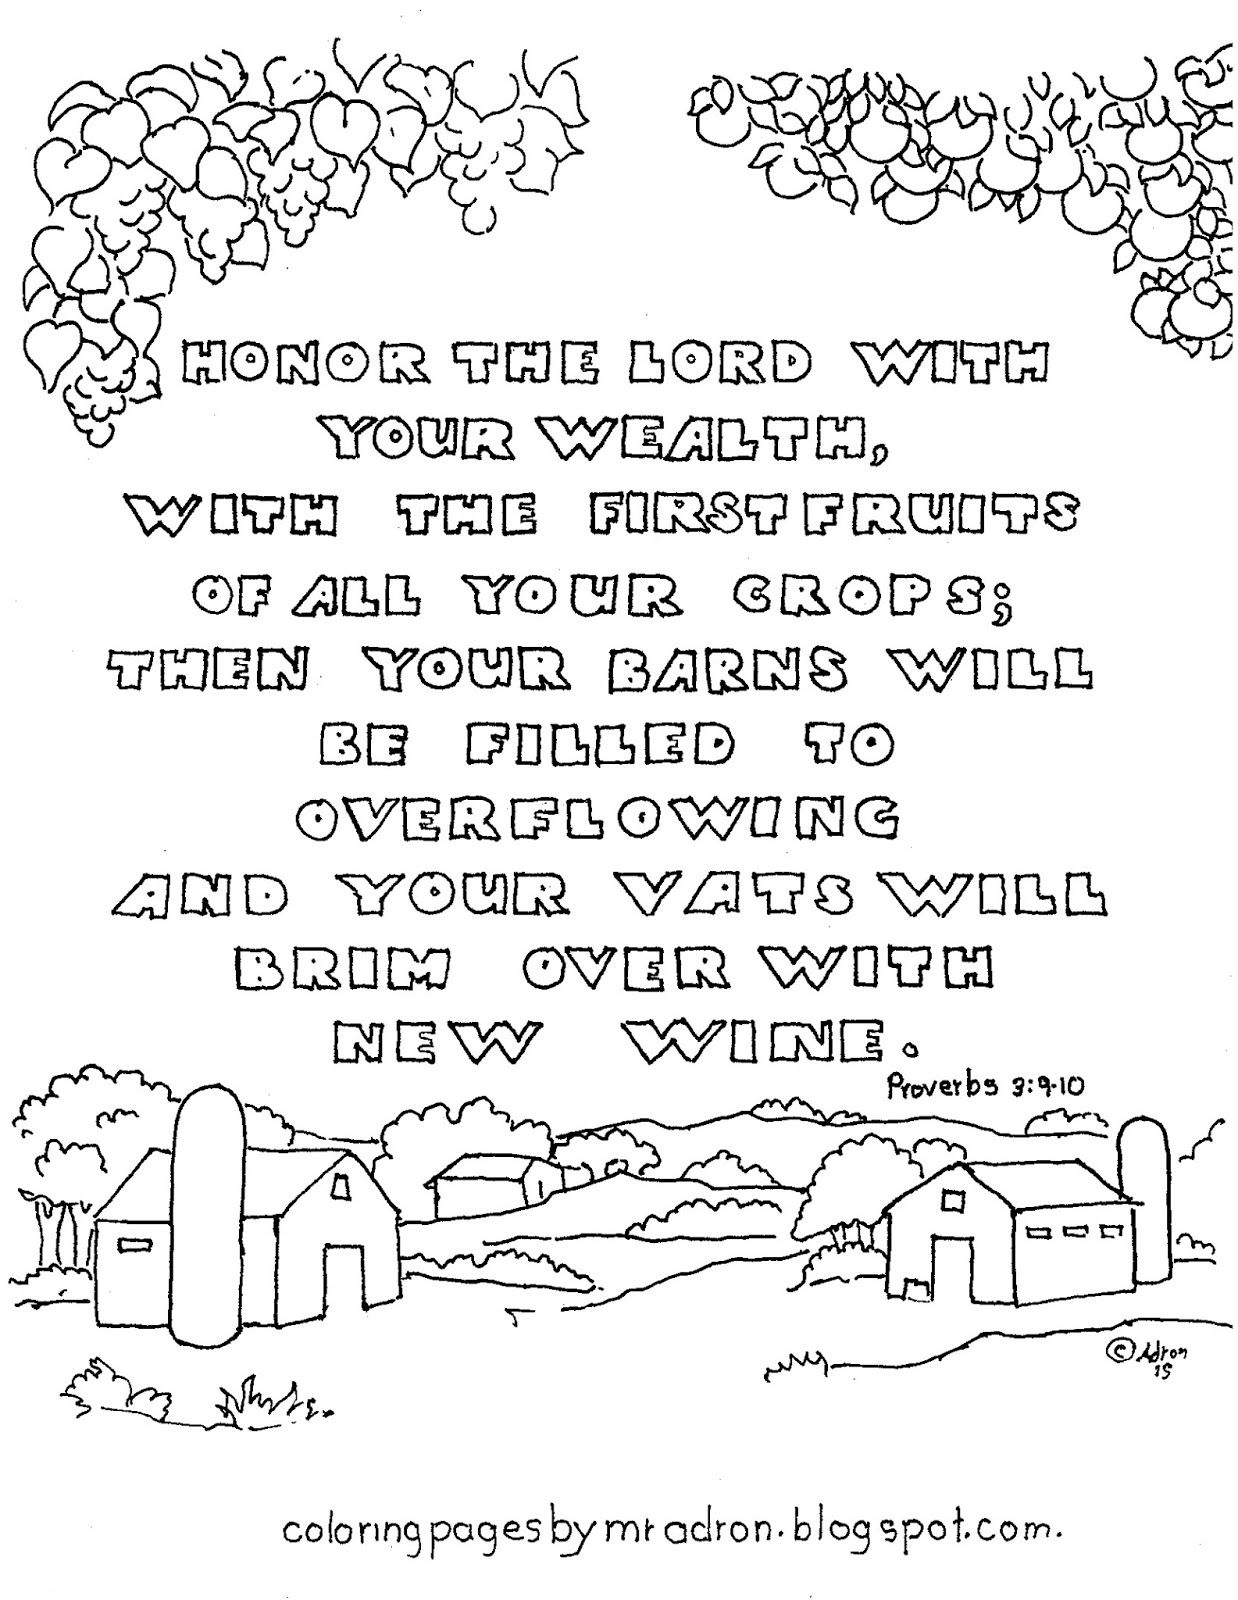 Proverbs 3 9 10 Printable Bible Verse To Color This Printable Coloring Page Will Be Us Bible Verse Coloring Page Bible Coloring Pages Printable Coloring Pages